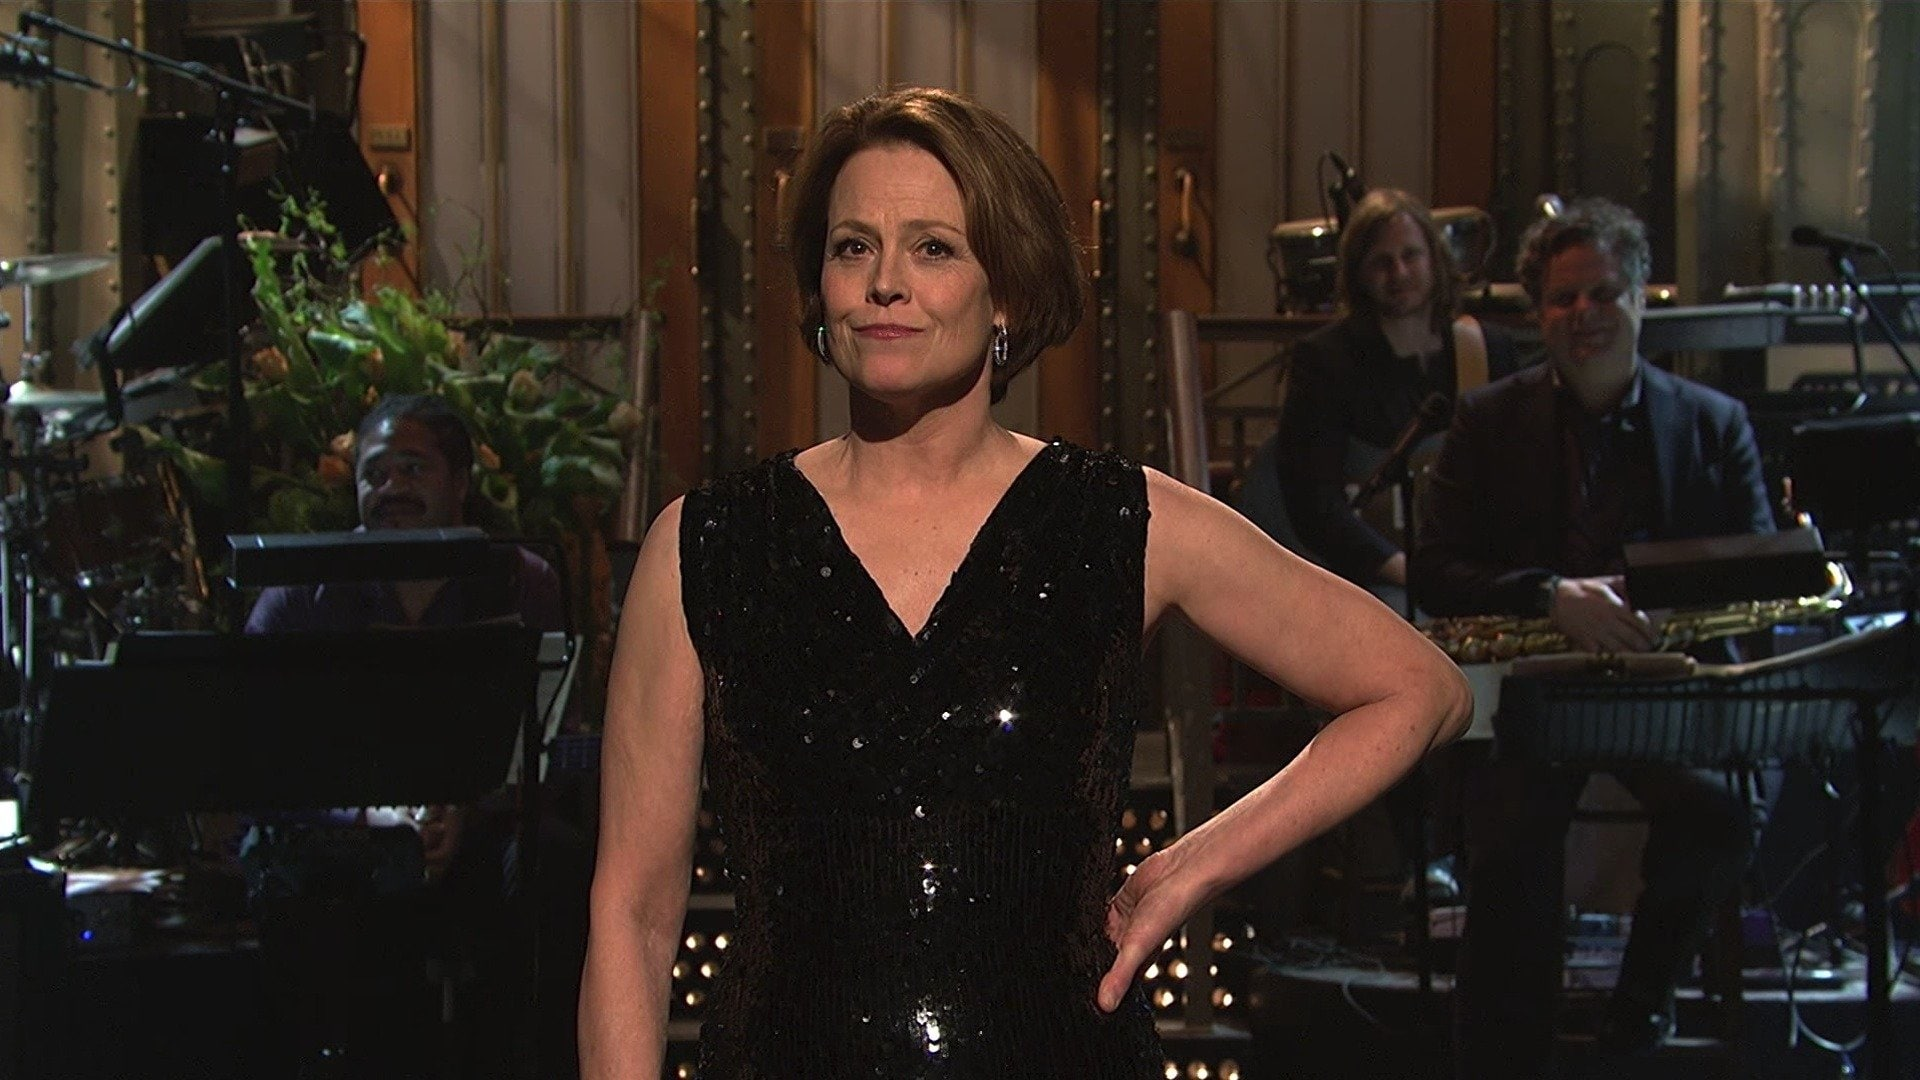 Sigourney Weaver: January 16, 2010